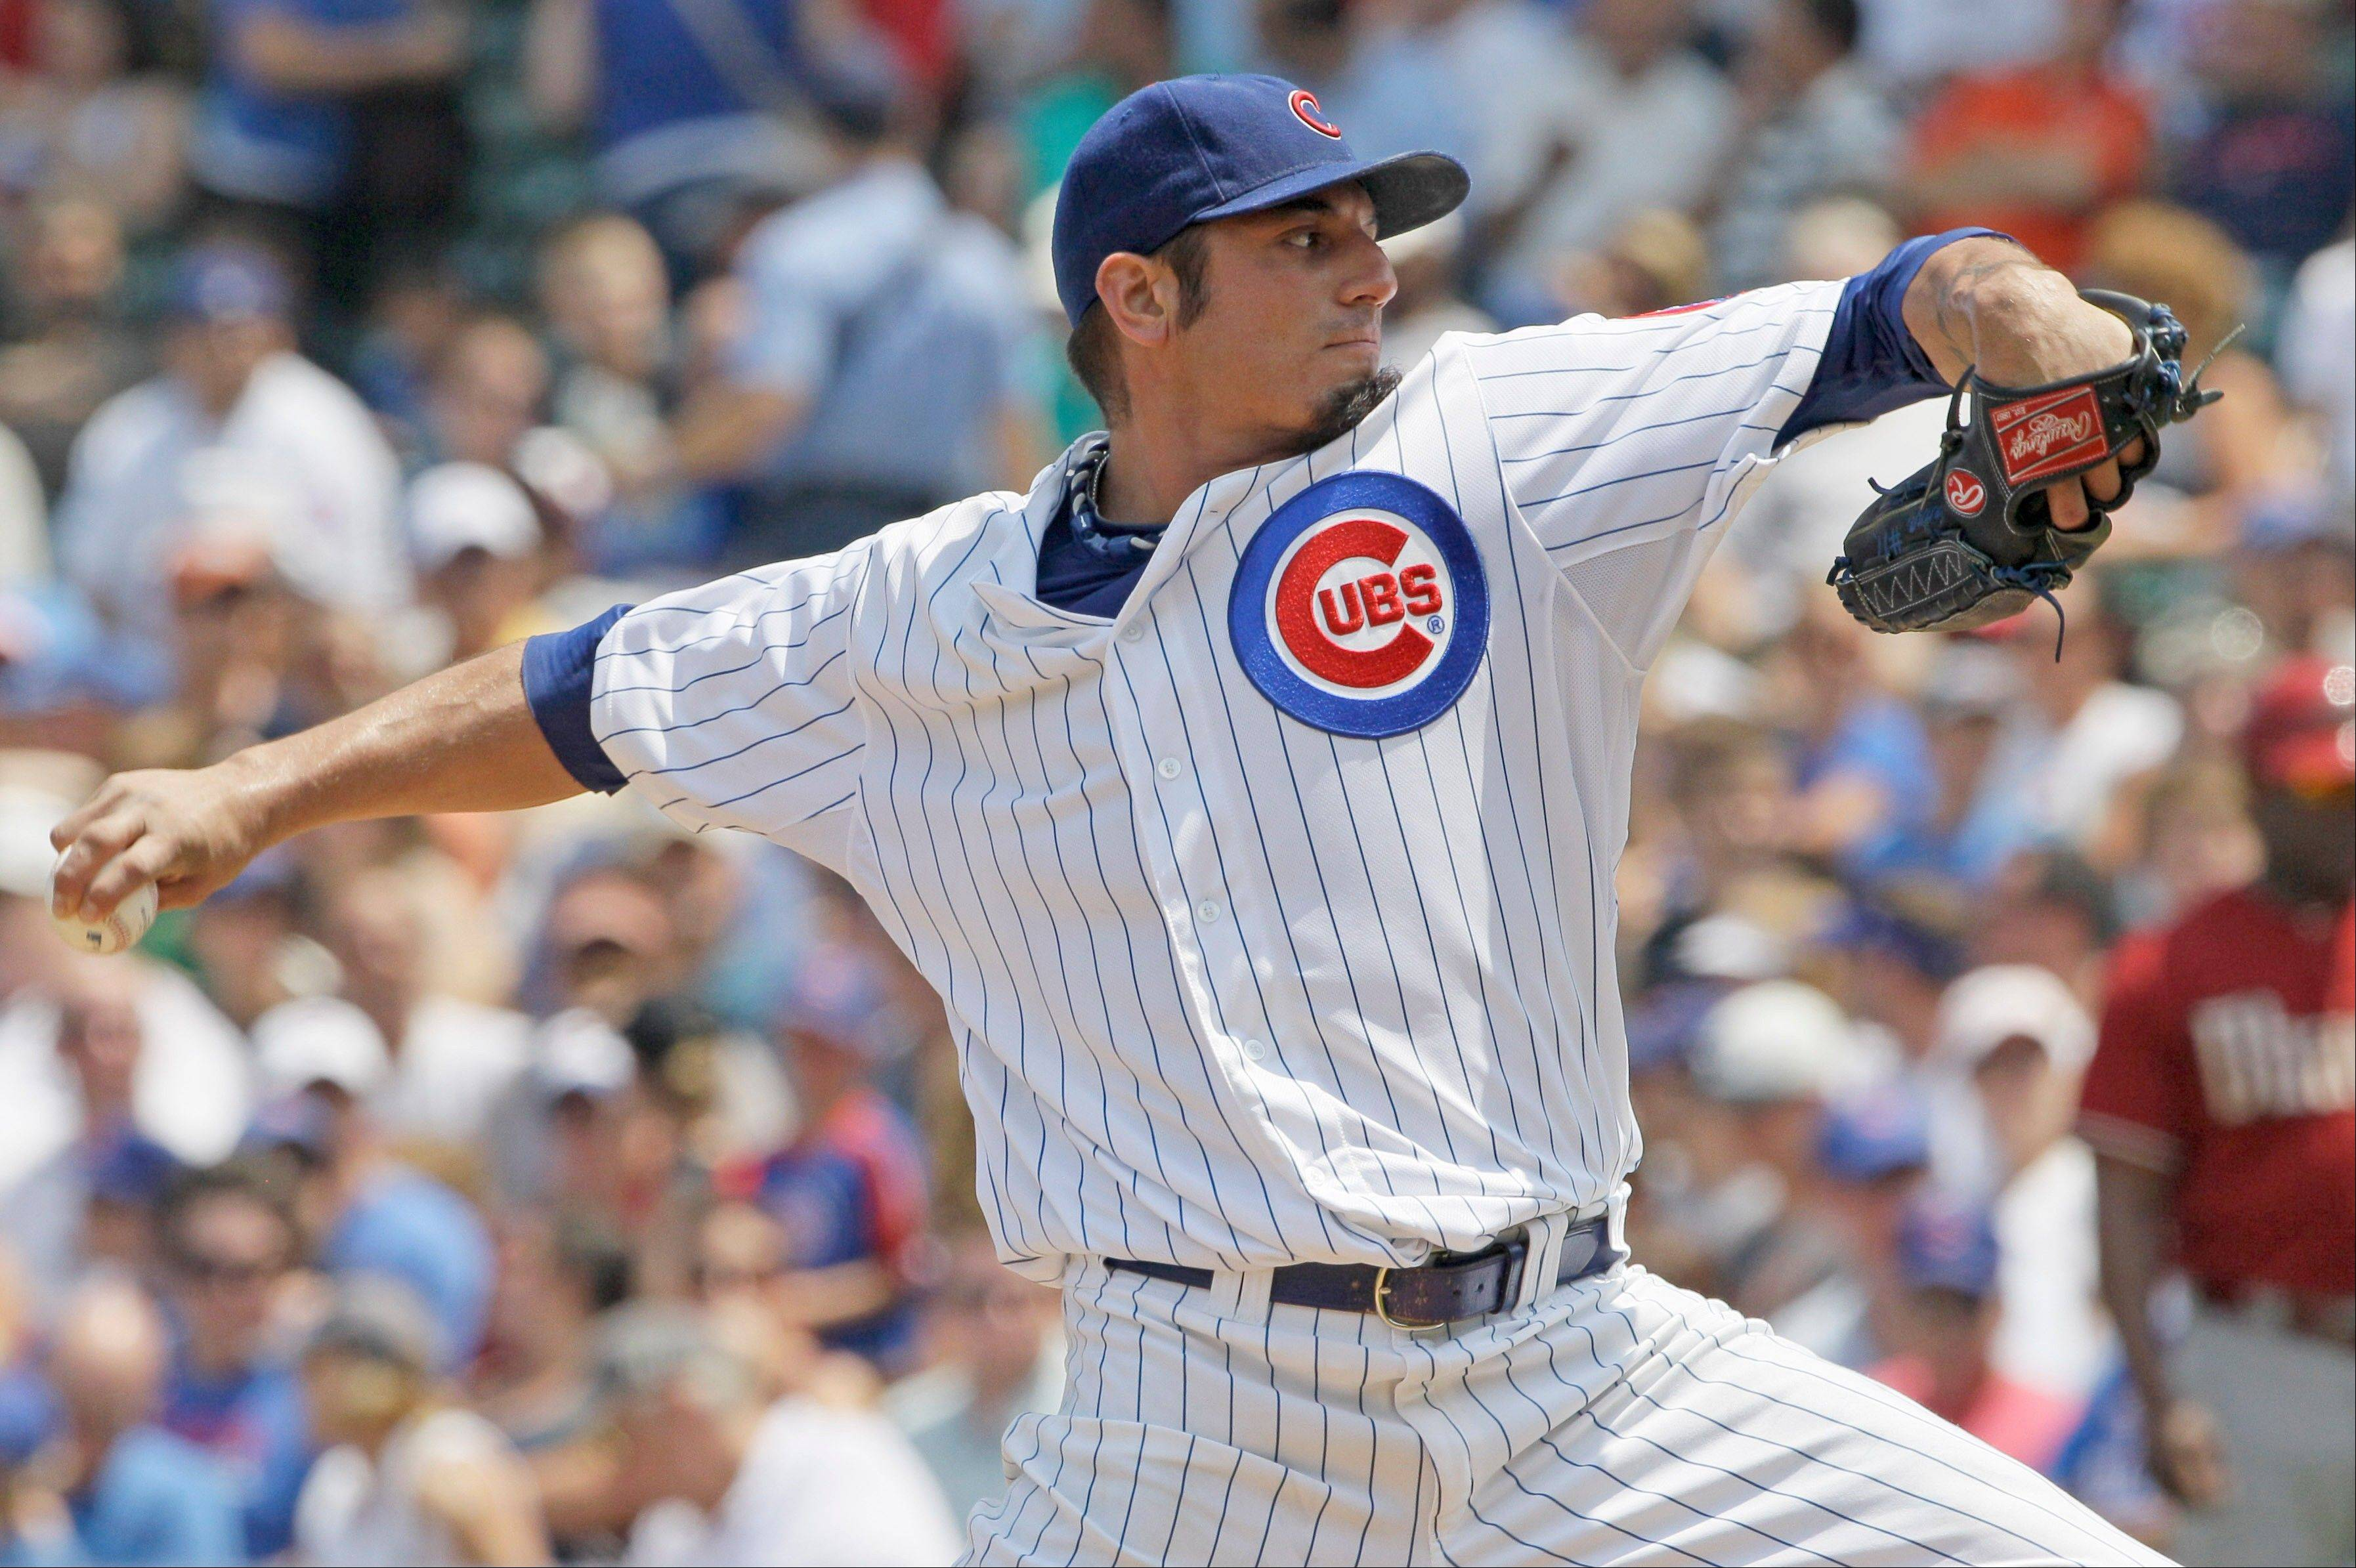 Starter Matt Garza worked 7 scoreless innings Sunday to help the Cubs sweep the Diamondbacks out of Wrigley Field.